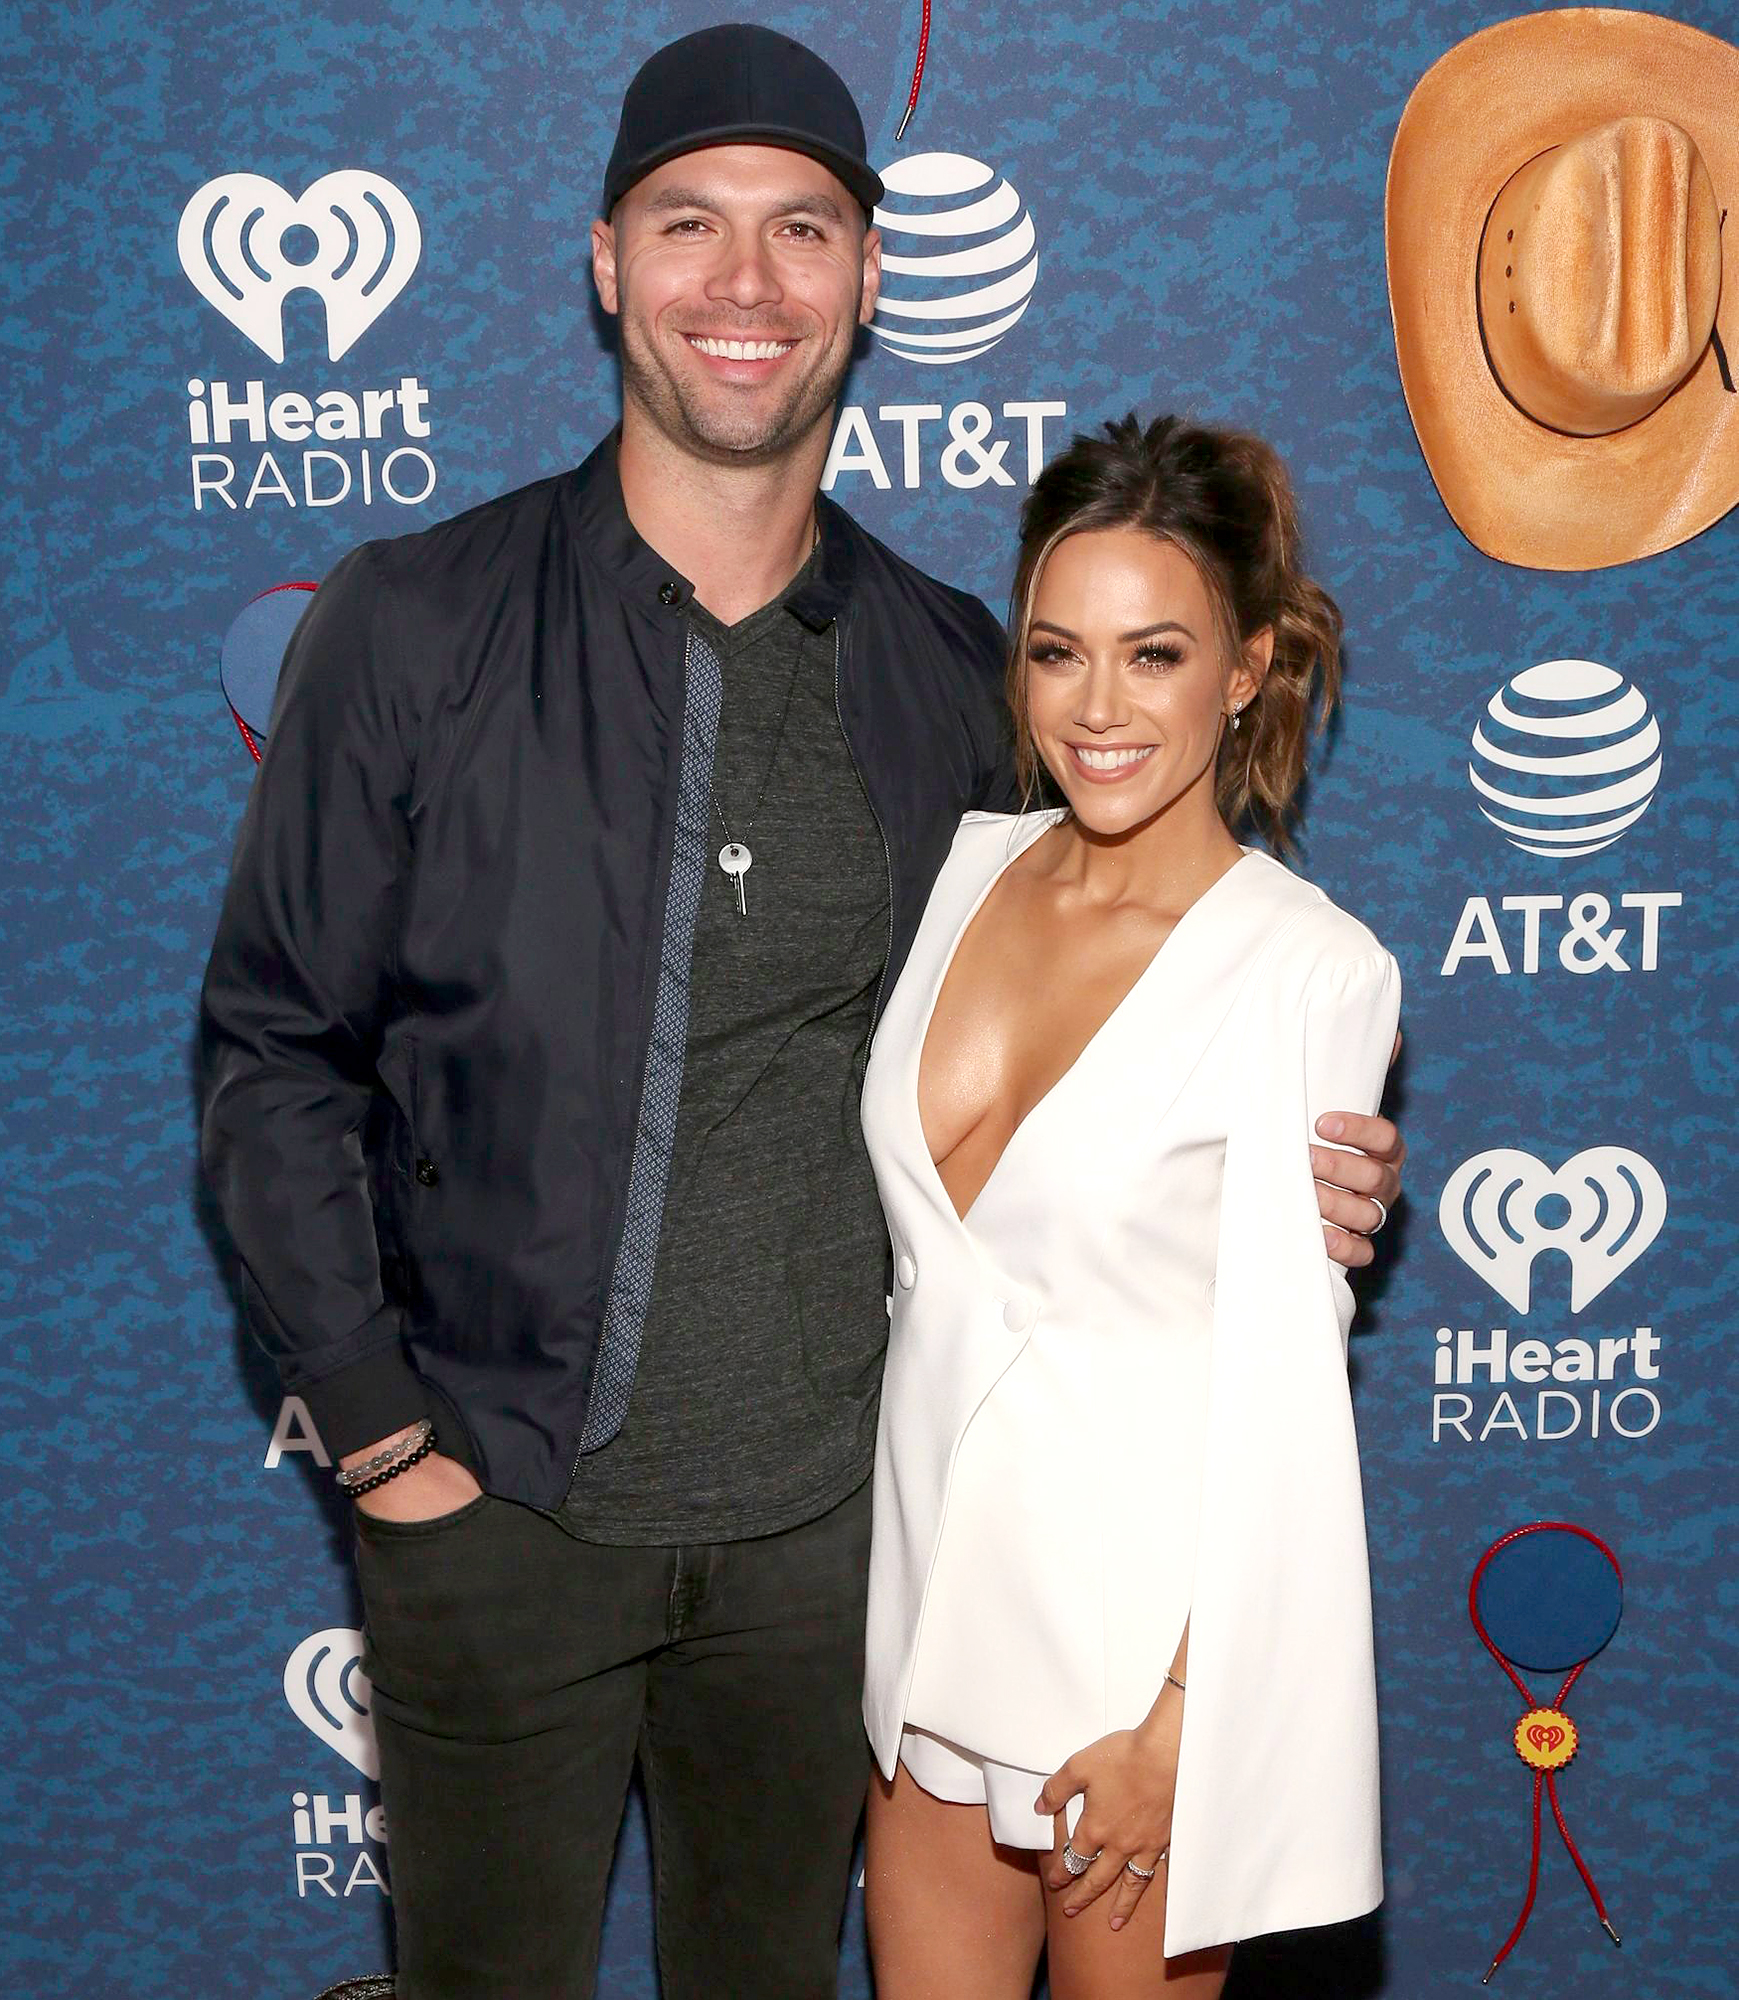 Jana-Kramer-and-Mike-Caussin-'Redo'-New-Year's-After-Split-Rumors